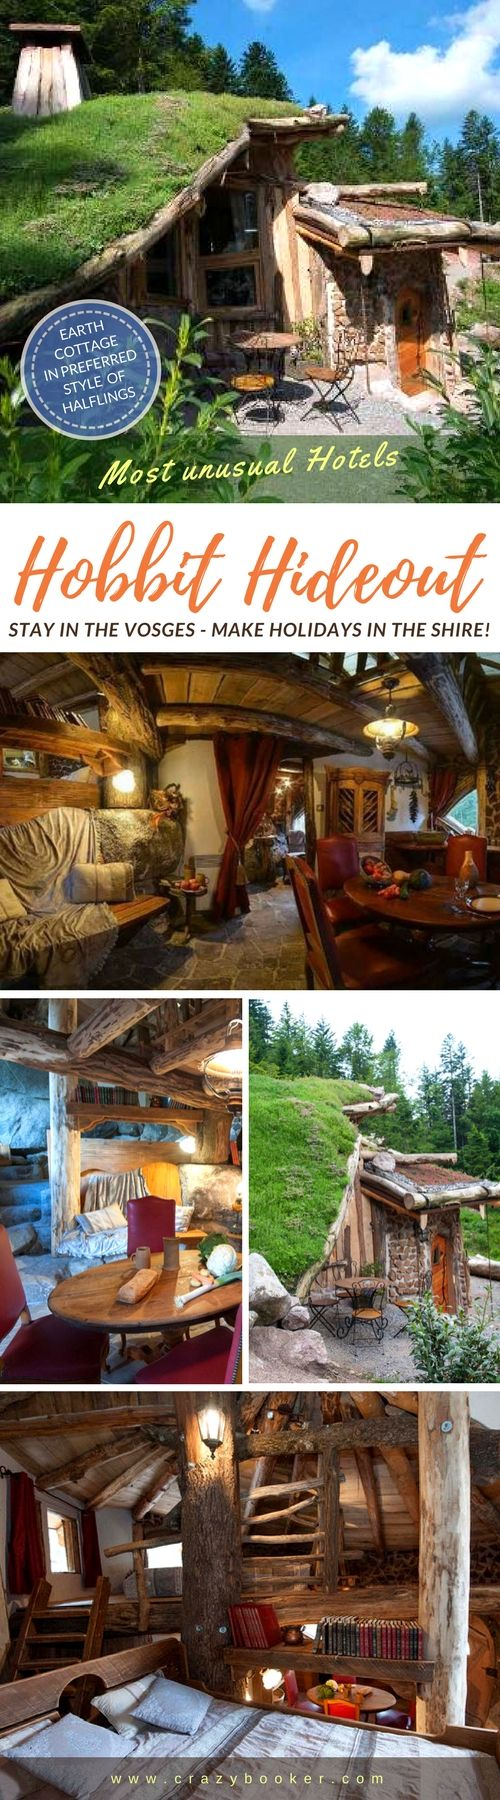 Hobbit Hideout in France | This fairytale earth cottage preferred by halflings in the Shire offers unique vacation stays in the Vosges | The location between picturesque cliffs and the rustic furnishings transports the guests of this grass-covered hut directly to Middle-Earth | Visit website or follow board and discover more unique holiday homes in hobbit style! #hobbit #shire #middle-earth #france